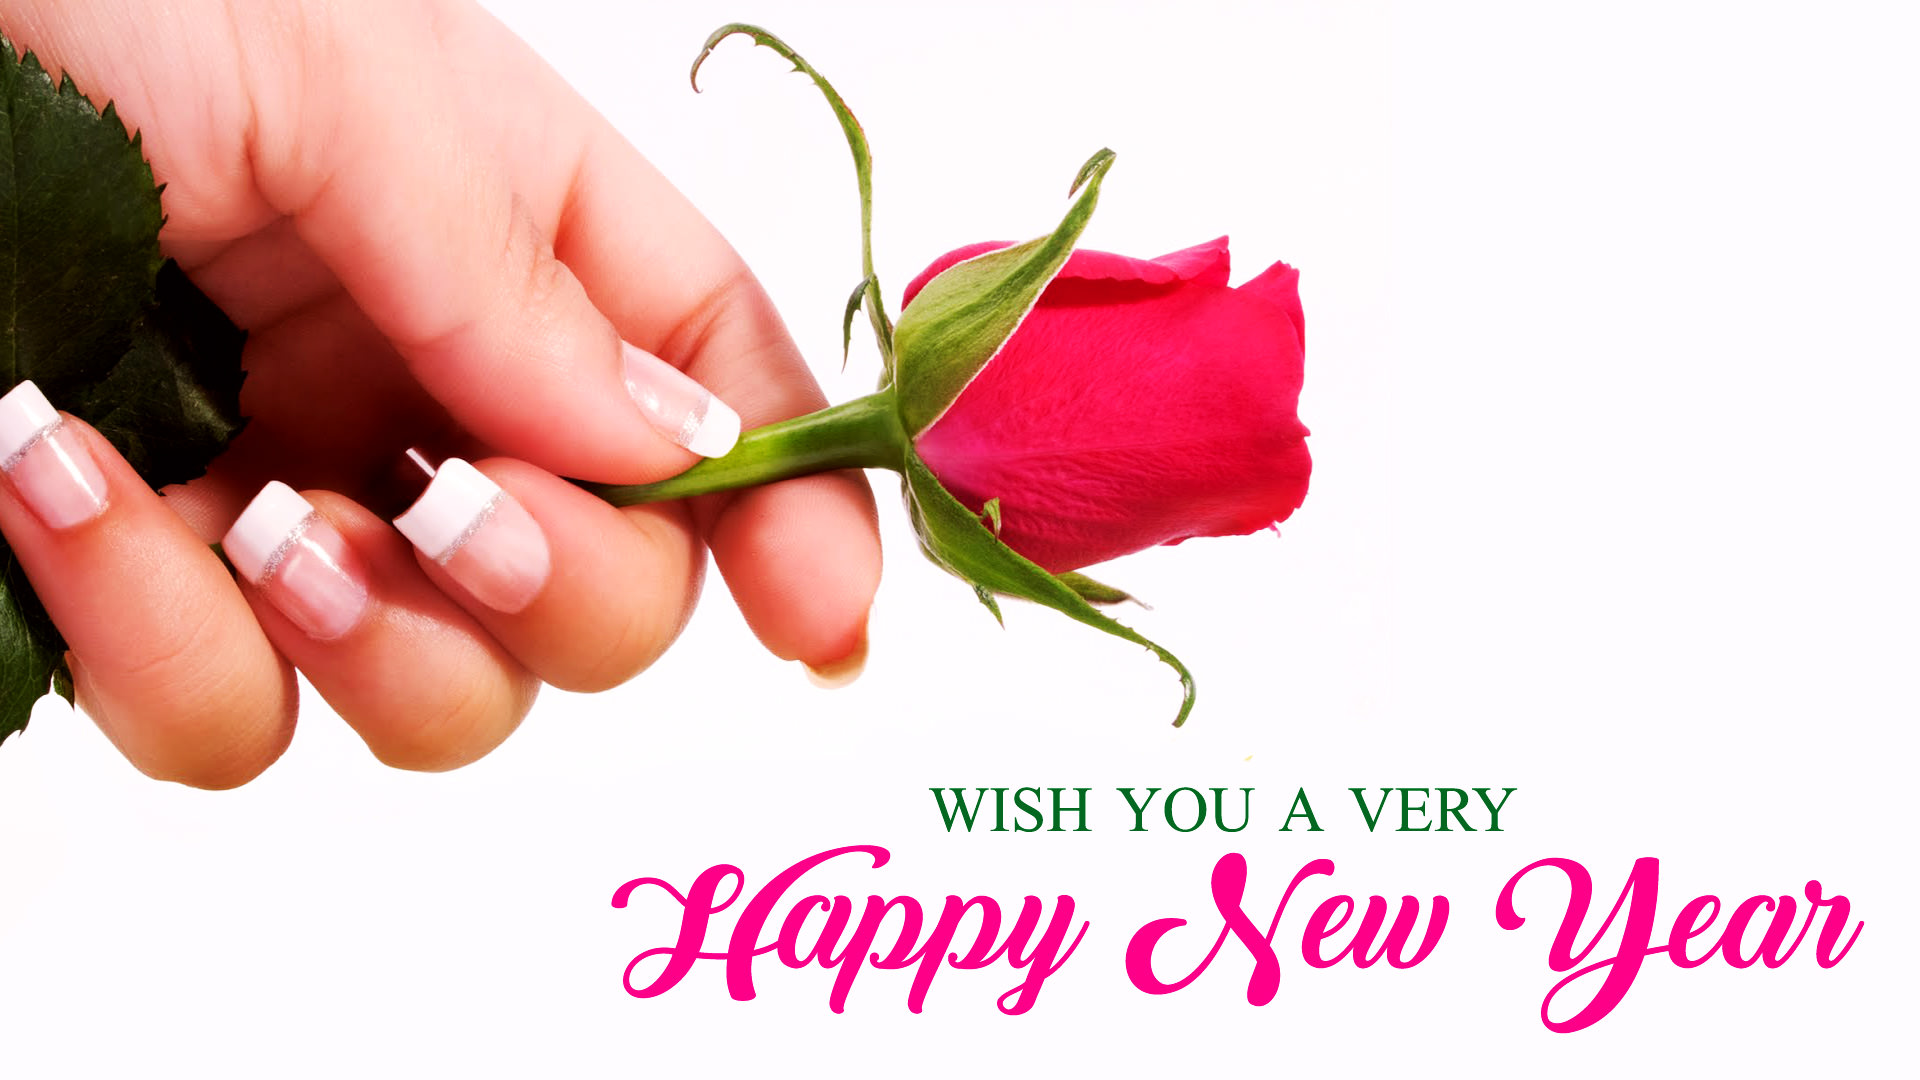 happy new year wishes wallpaper with rose